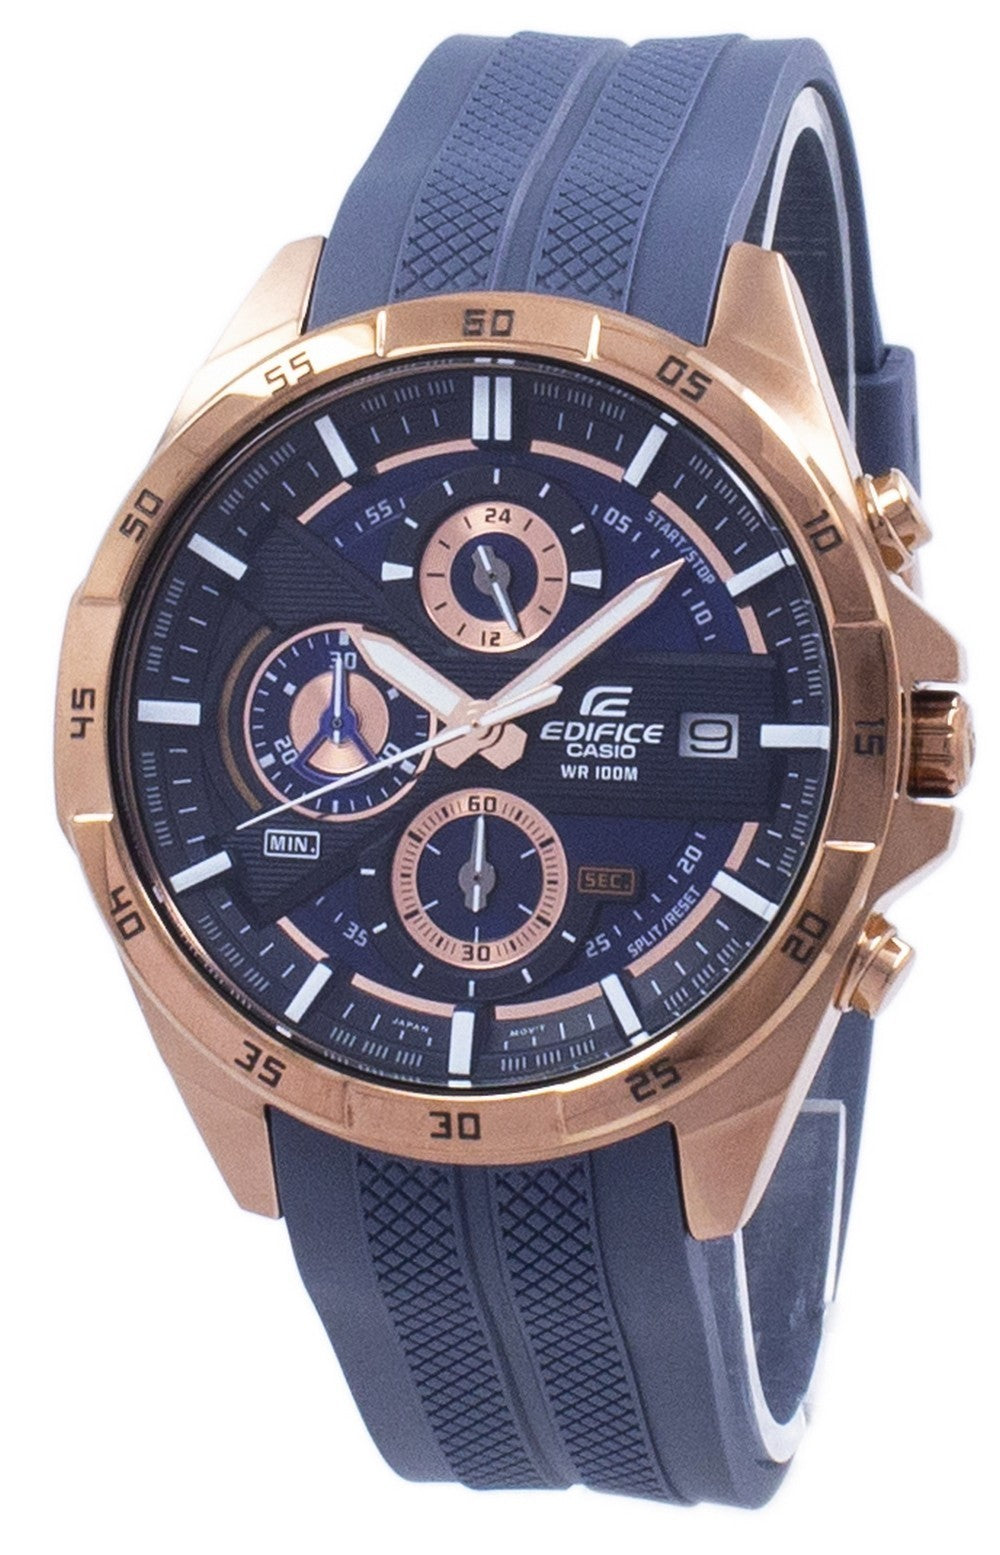 Casio Edifice Chronograph Quartz EFR-556PC-2AV EFR556PC-2AV Men's Watch